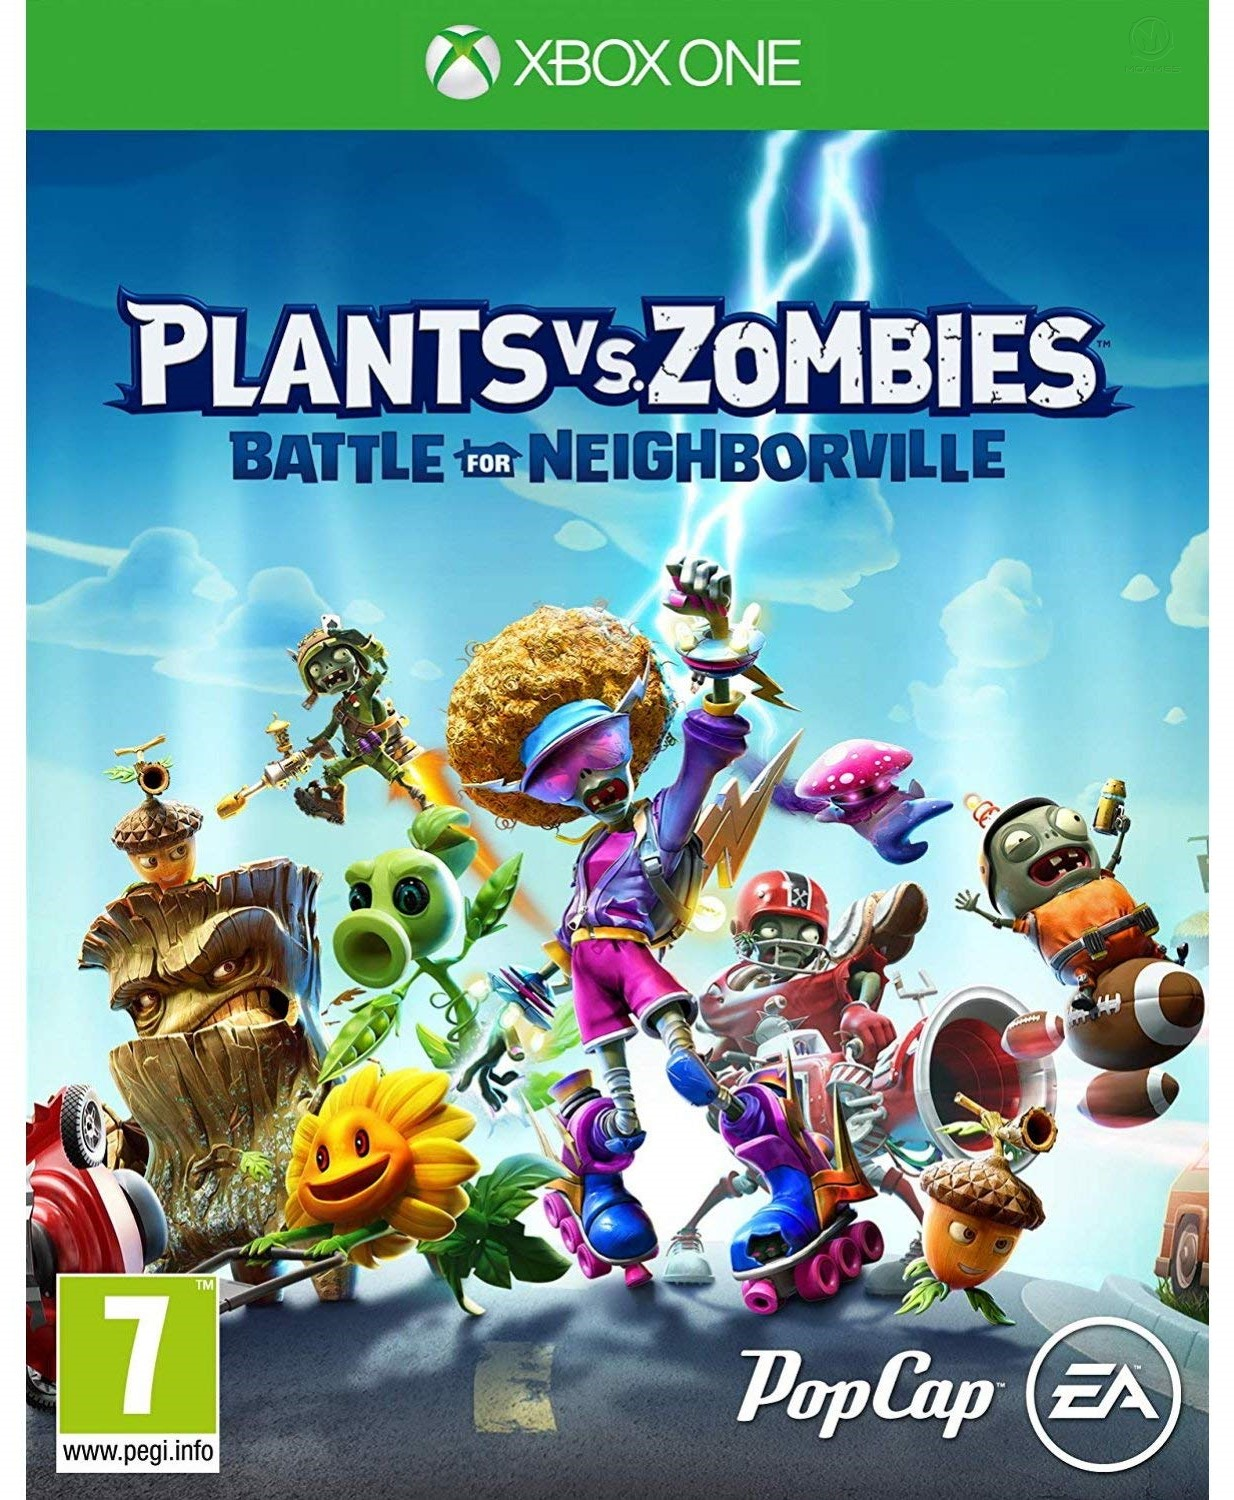 Plants vs. Zombies: Битва за Нейборвіль | Plants vs Zombies Battle for Neighborville XONE